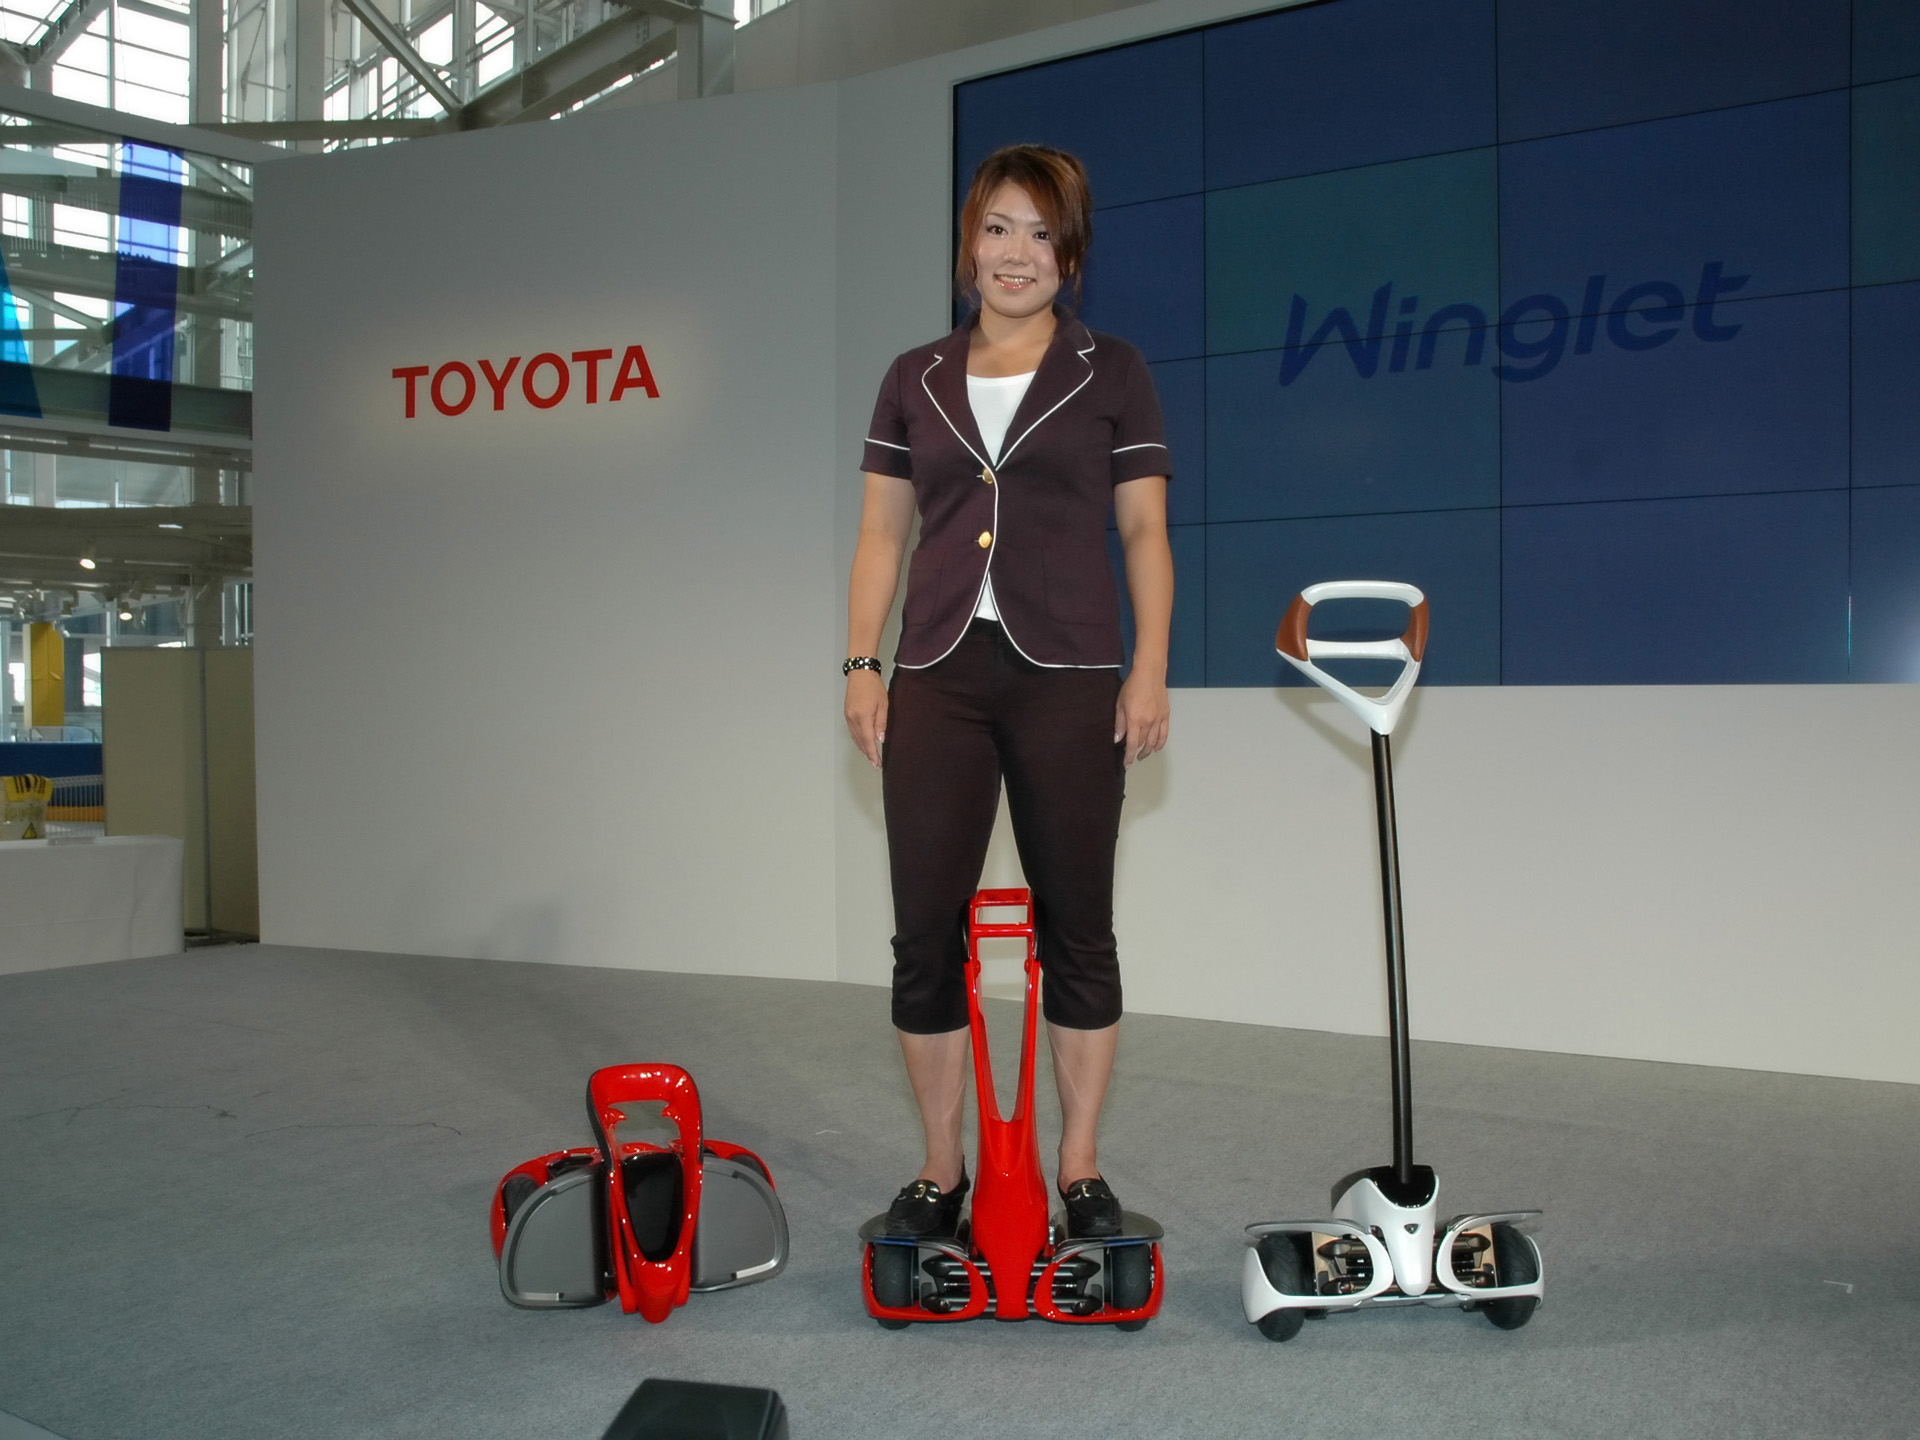 2008_Toyota_Winglet_-_personal_transport_assistance_robot_004_9634